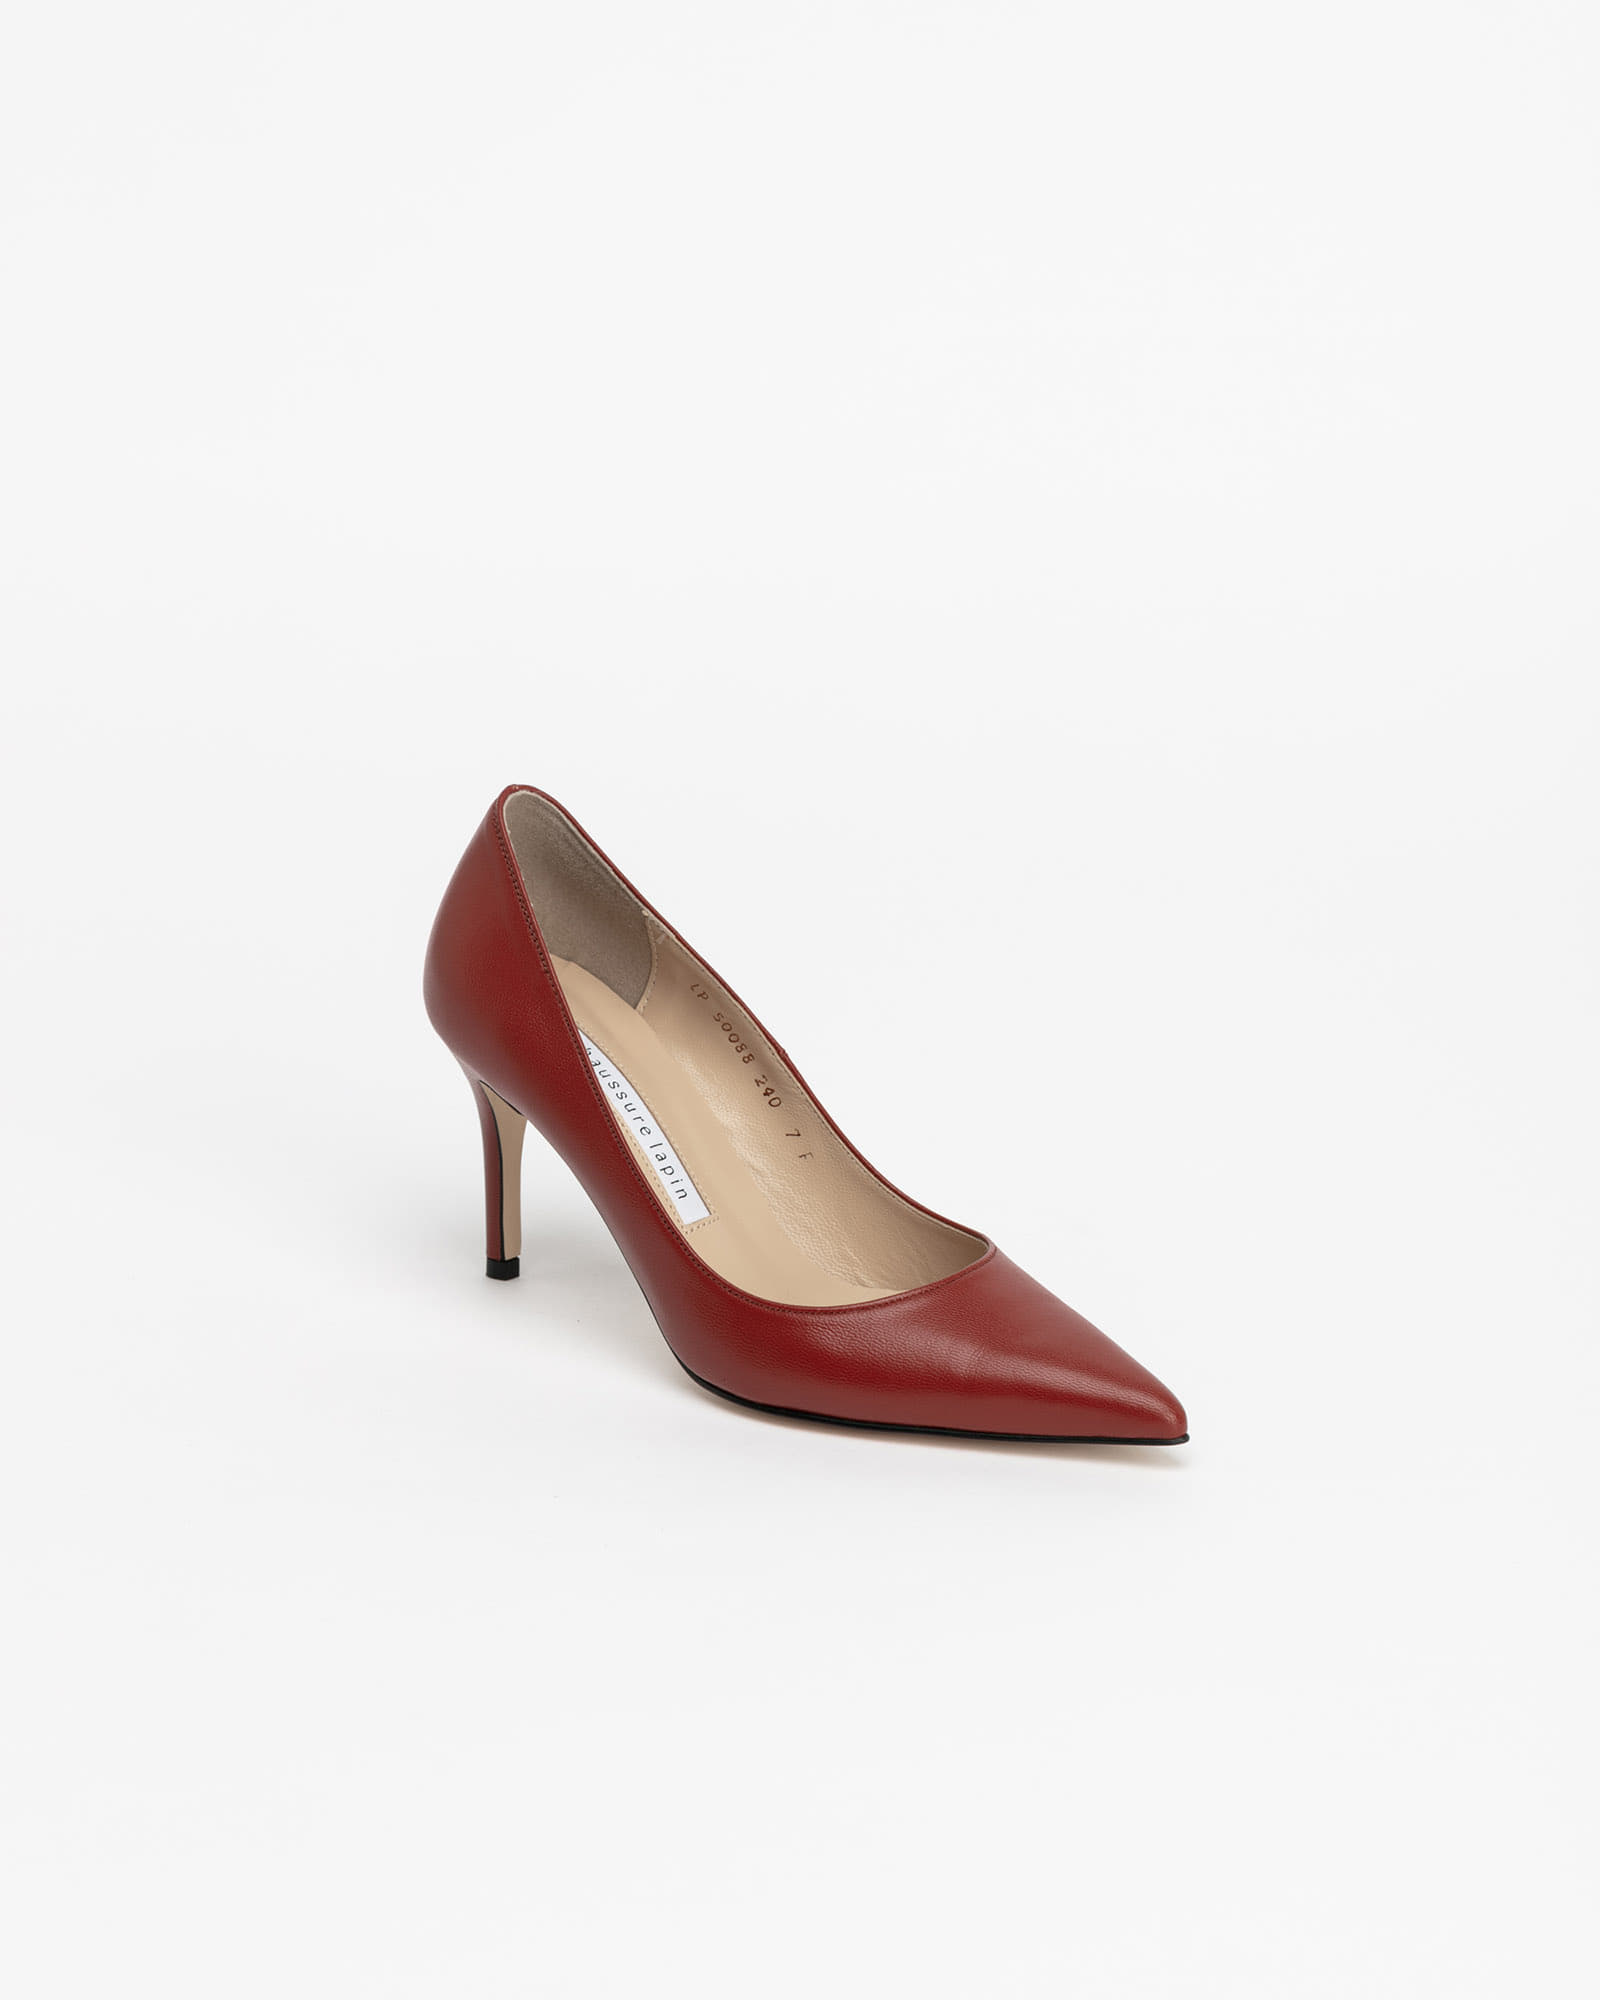 Chauffeur Stilletto Pumps in Ruby Brown